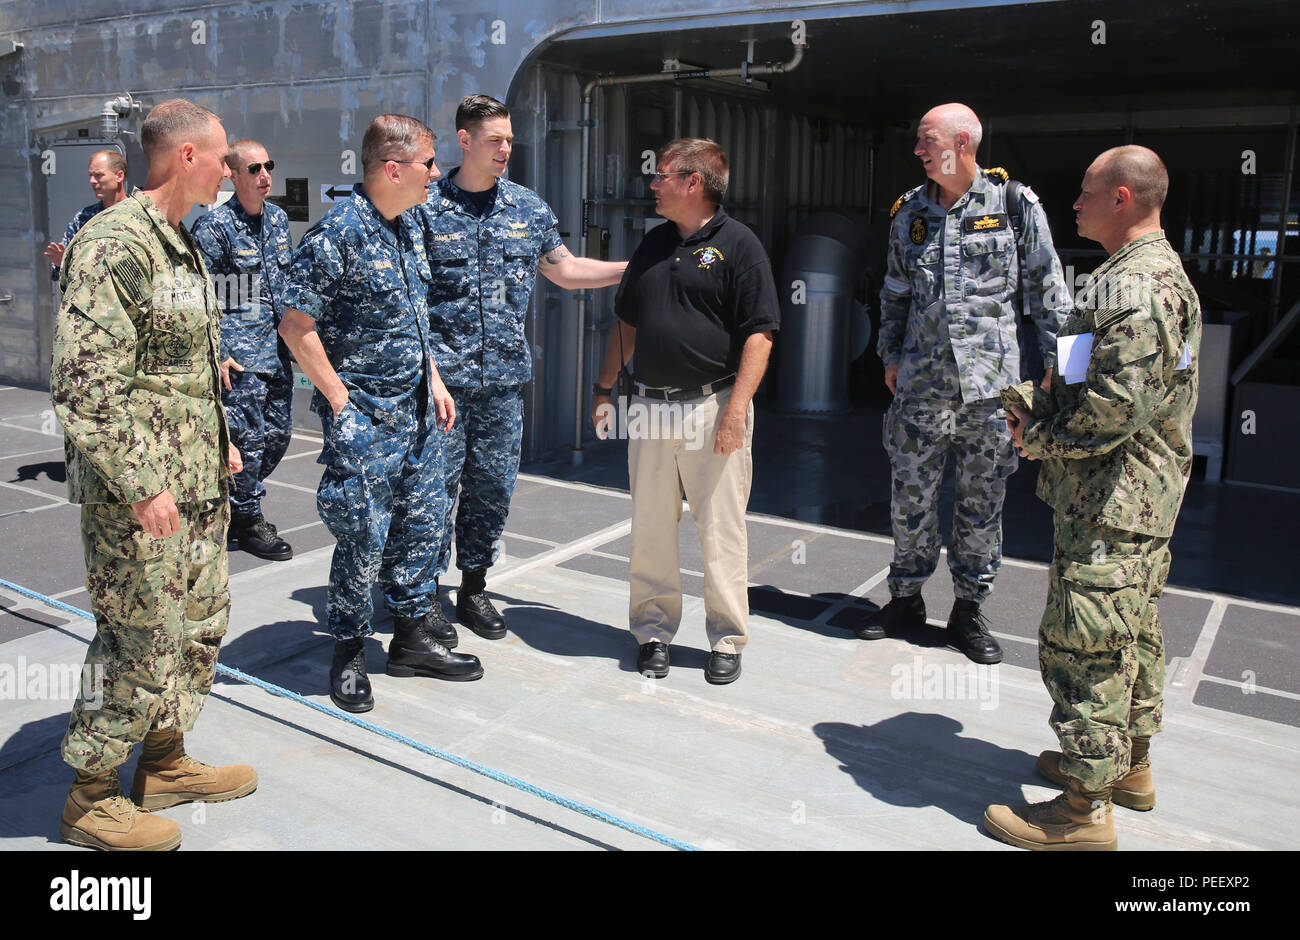 150813-M-GO800-099 SAN FERNANDO CITY, Philippines (August 13, 2015) – Master of the Military Sealift Command joint high speed vessel USNS Millinocket (JHSV 3) Capt. Timothy Lockwood shows Commander, Task Force 73, Rear Adm. Charles Williams, the ship's bow Aug. 13. Task Force Forager will be in the Philippines until August 15 providing medical and engineering assistance. Task Force Forager, embarked aboard the Military Sealift Command joint high speed vessel USNS Millinocket (JHSV 3) is serving as the secondary platform for Pacific Partnership, led by an expeditionary command element from the  - Stock Image